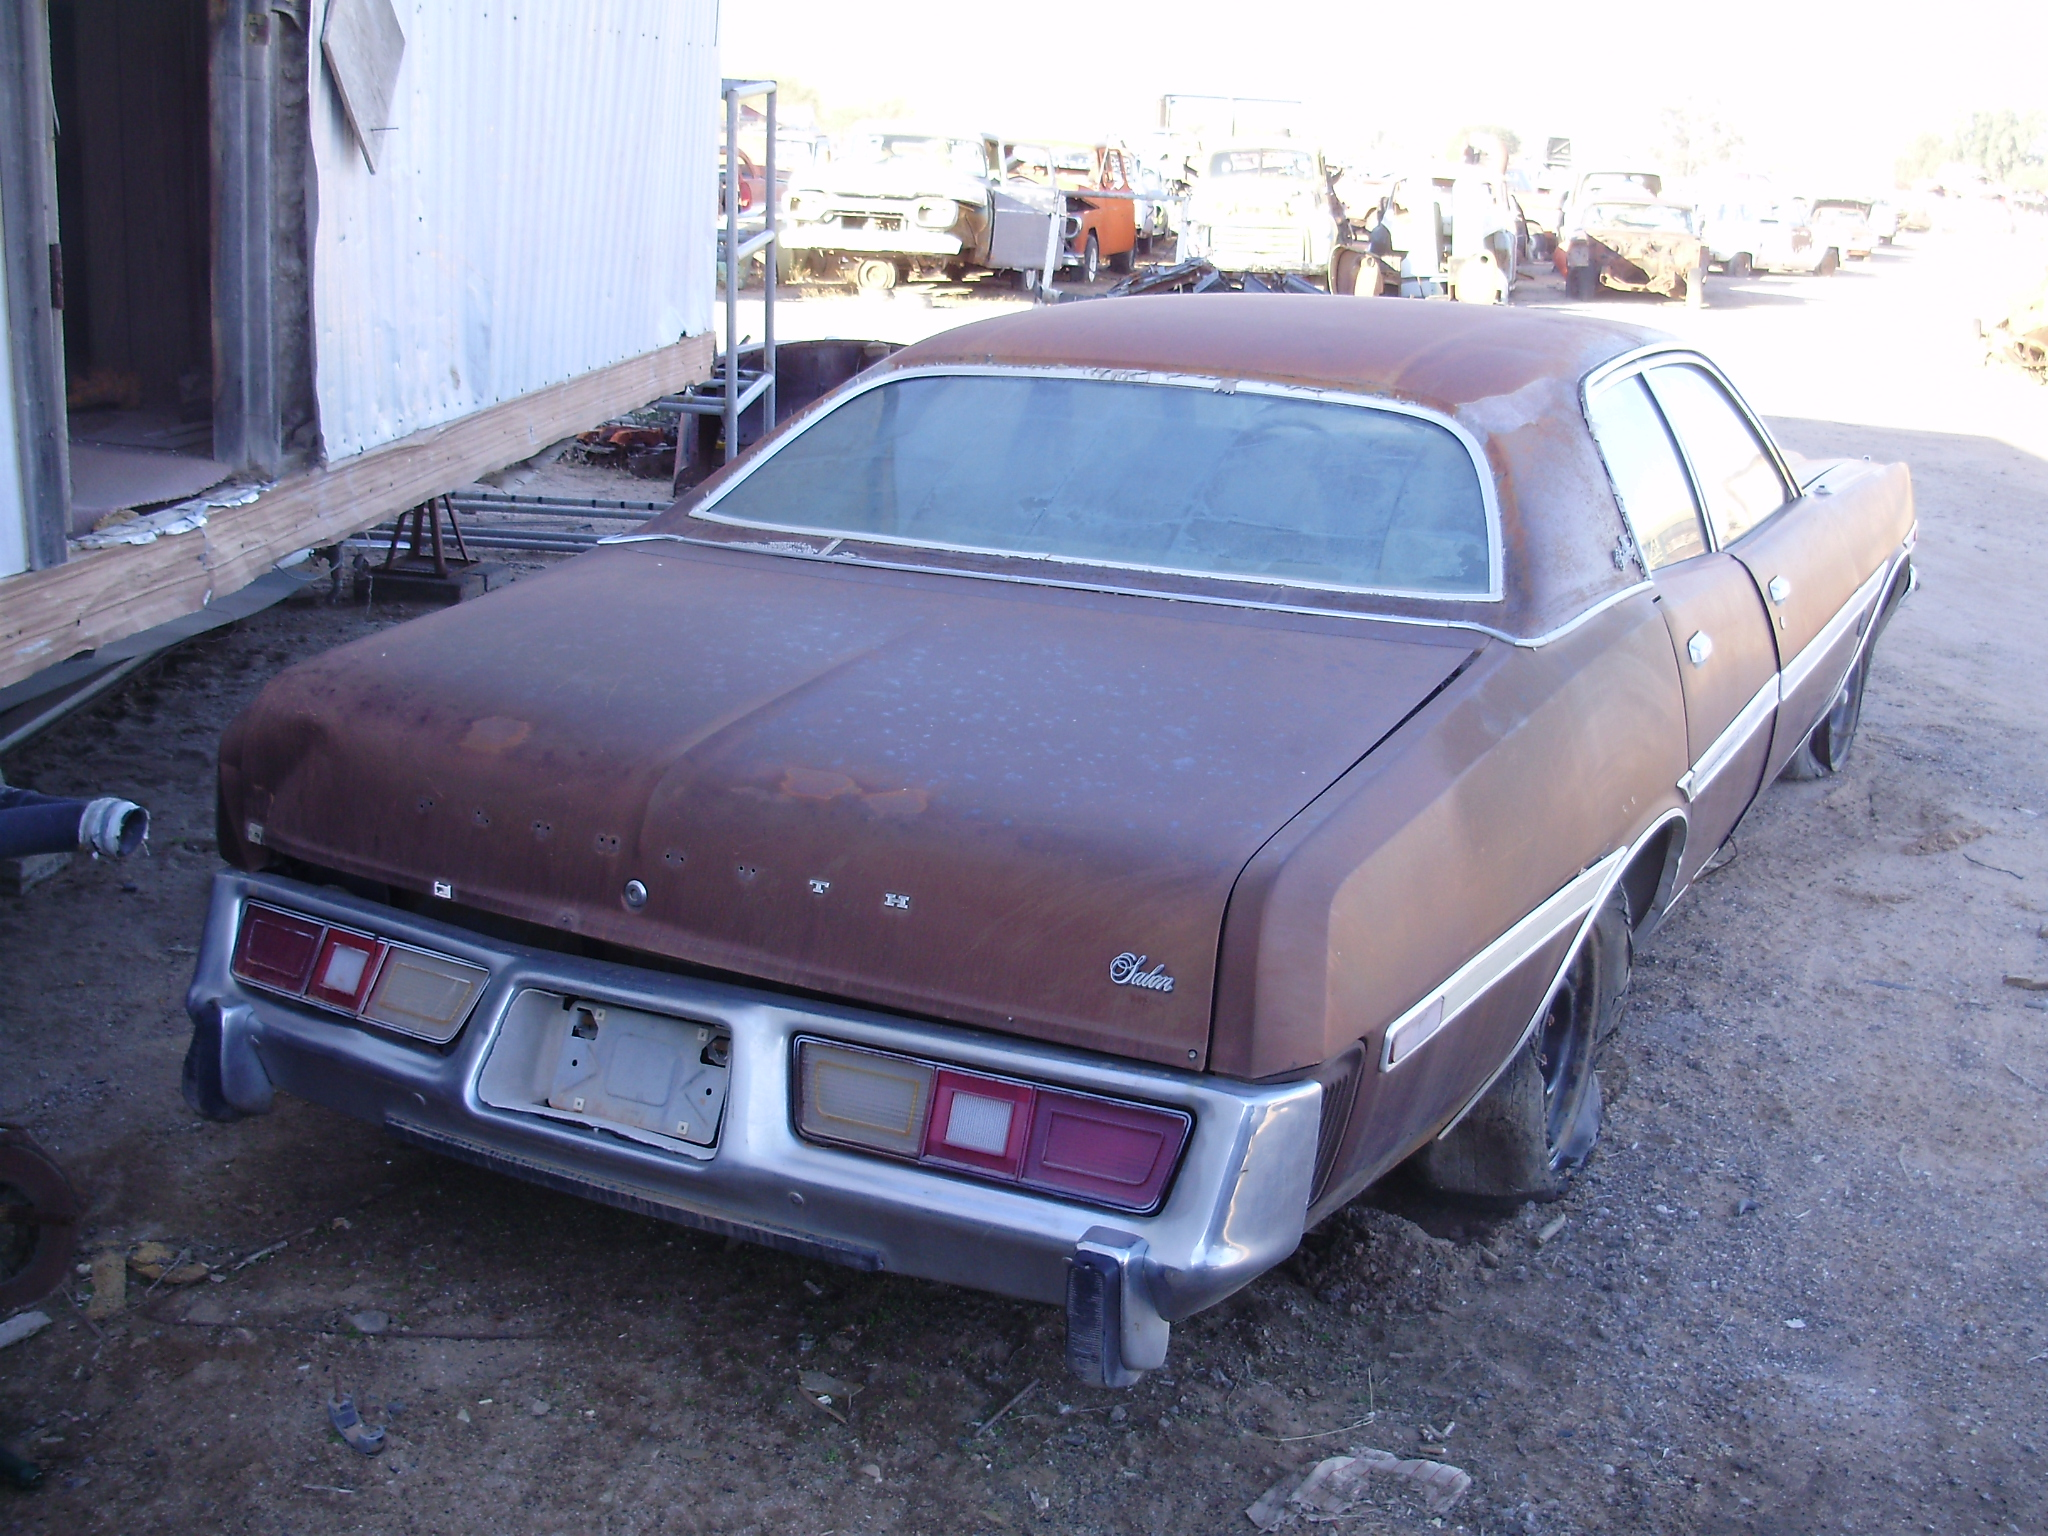 1977 Plymouth Fury 77pl2310c Desert Valley Auto Parts 1950s